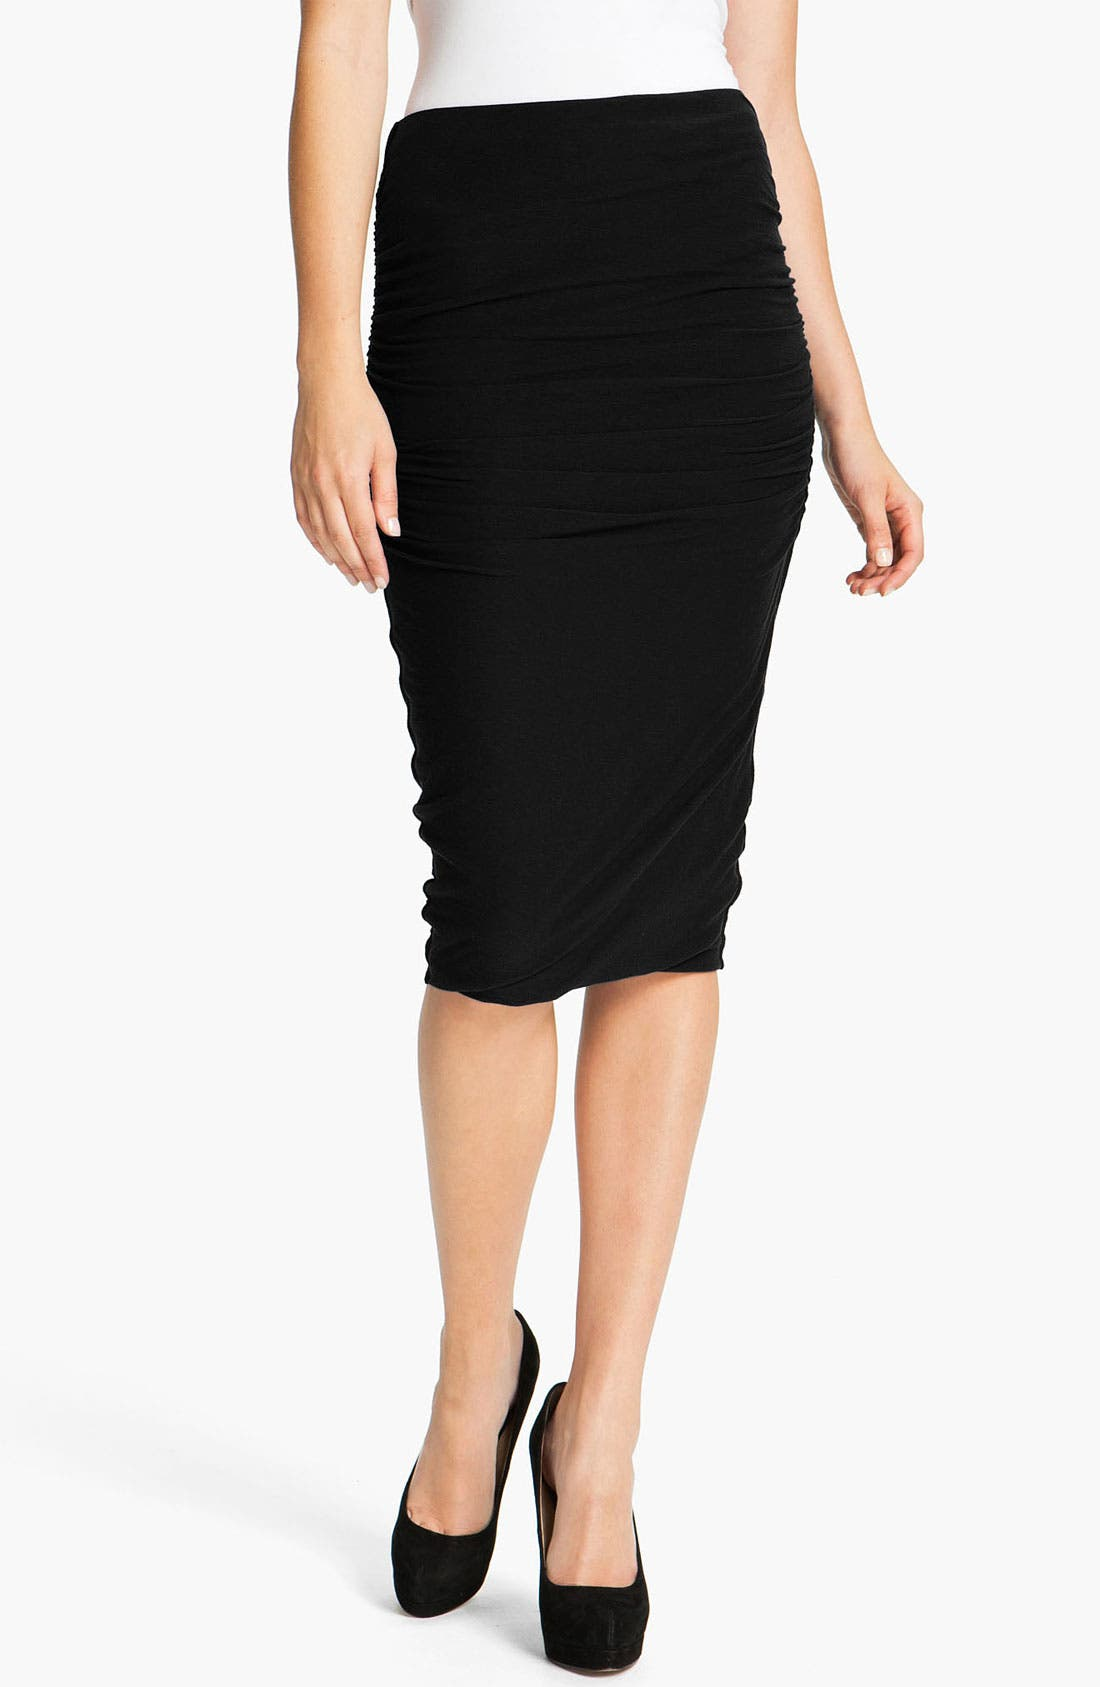 Alternate Image 1 Selected - James Perse Ruched Pencil Skirt